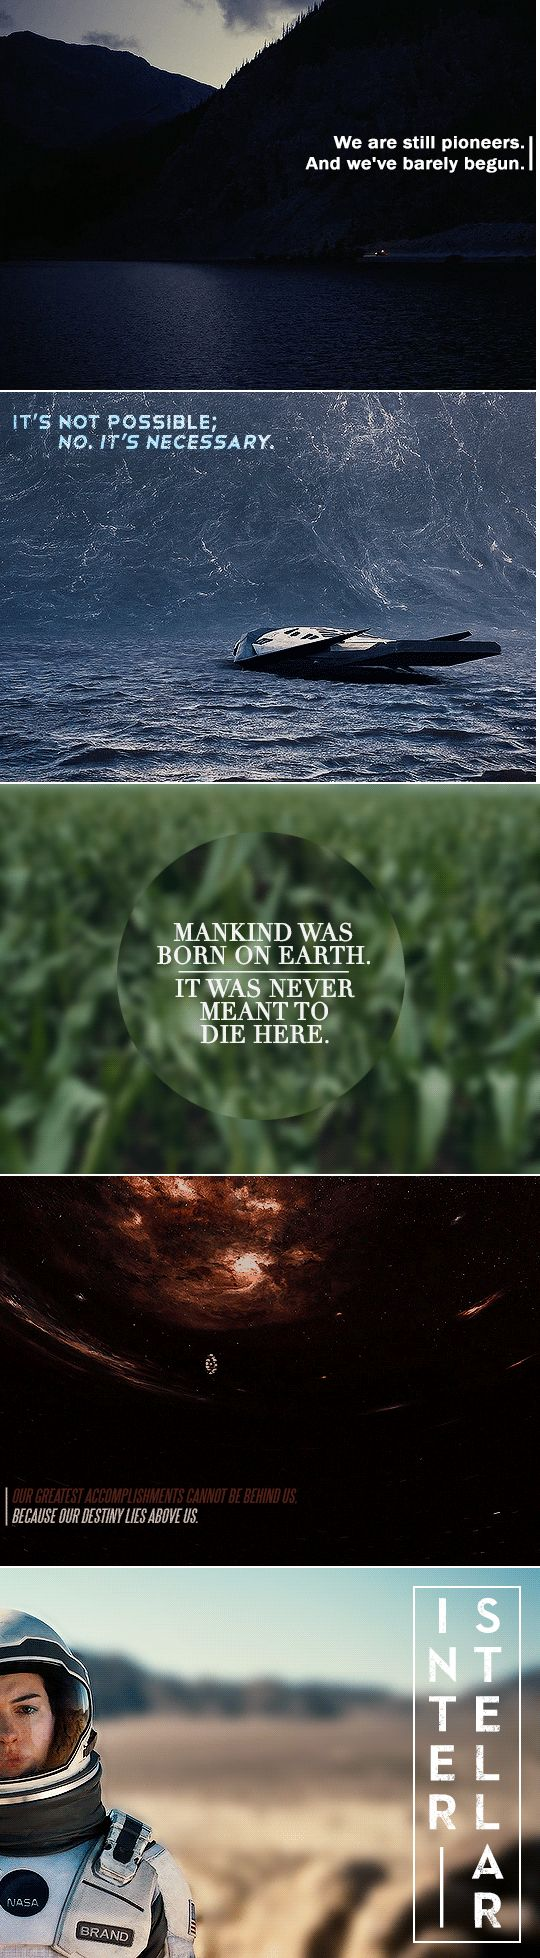 Interstellar: We are still pioneers. And we've barely begun. It's not possible; no. It's necessary. Mankind was born on earth. It was never meant to die here. Our greatest accomplishments cannot be behind us. Because our destiny lies above us.